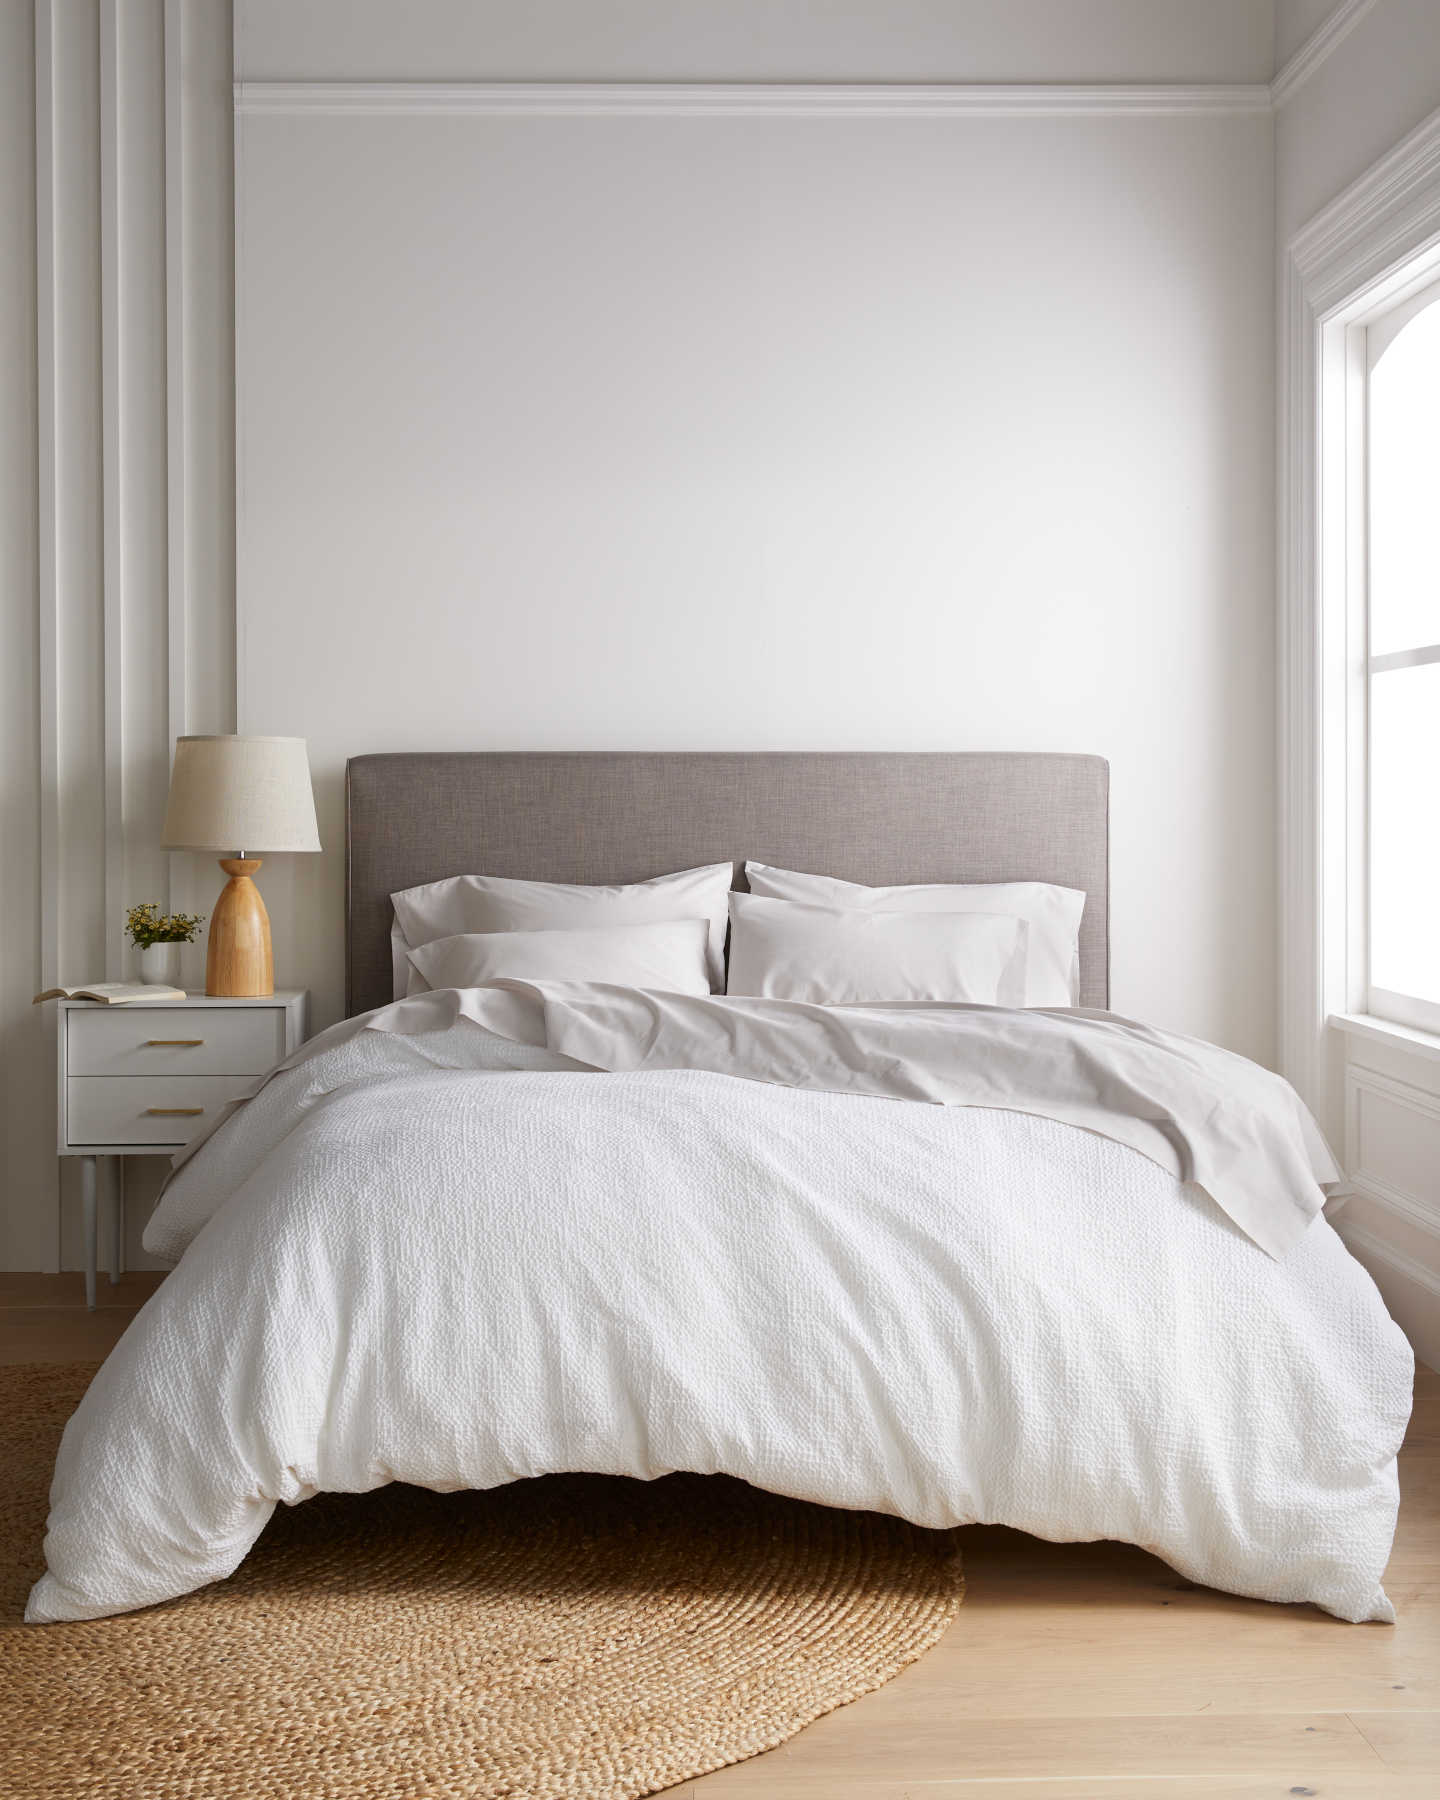 Pair With - Organic Luxe Waffle Duvet Cover - Light Grey